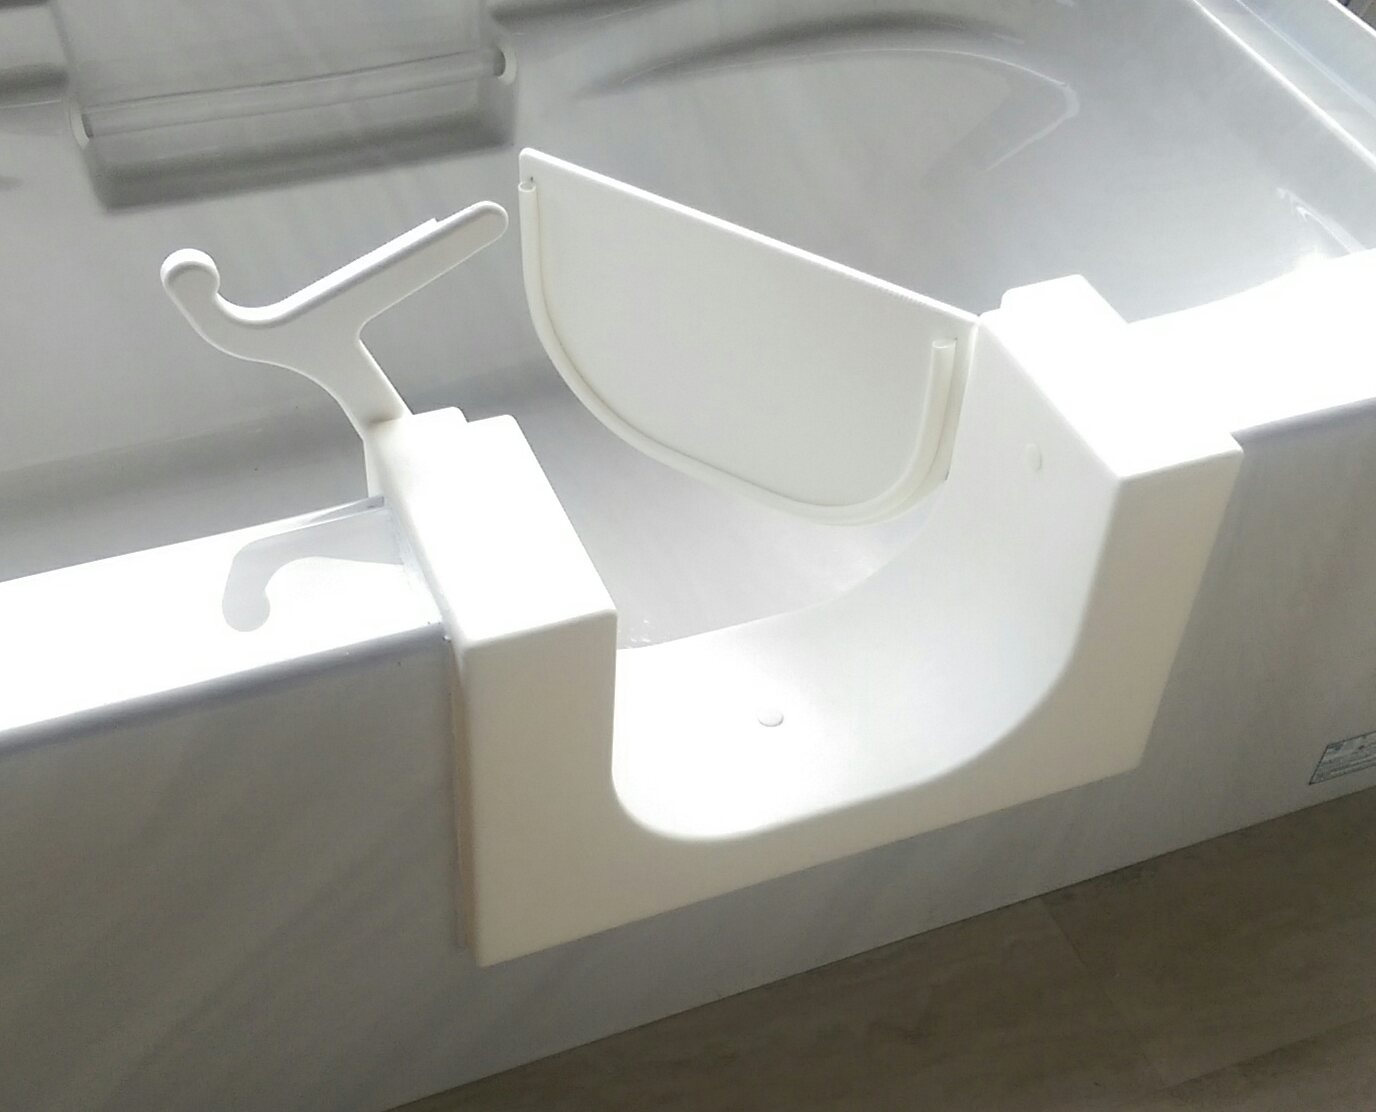 walk-in bathtub with door open, installed